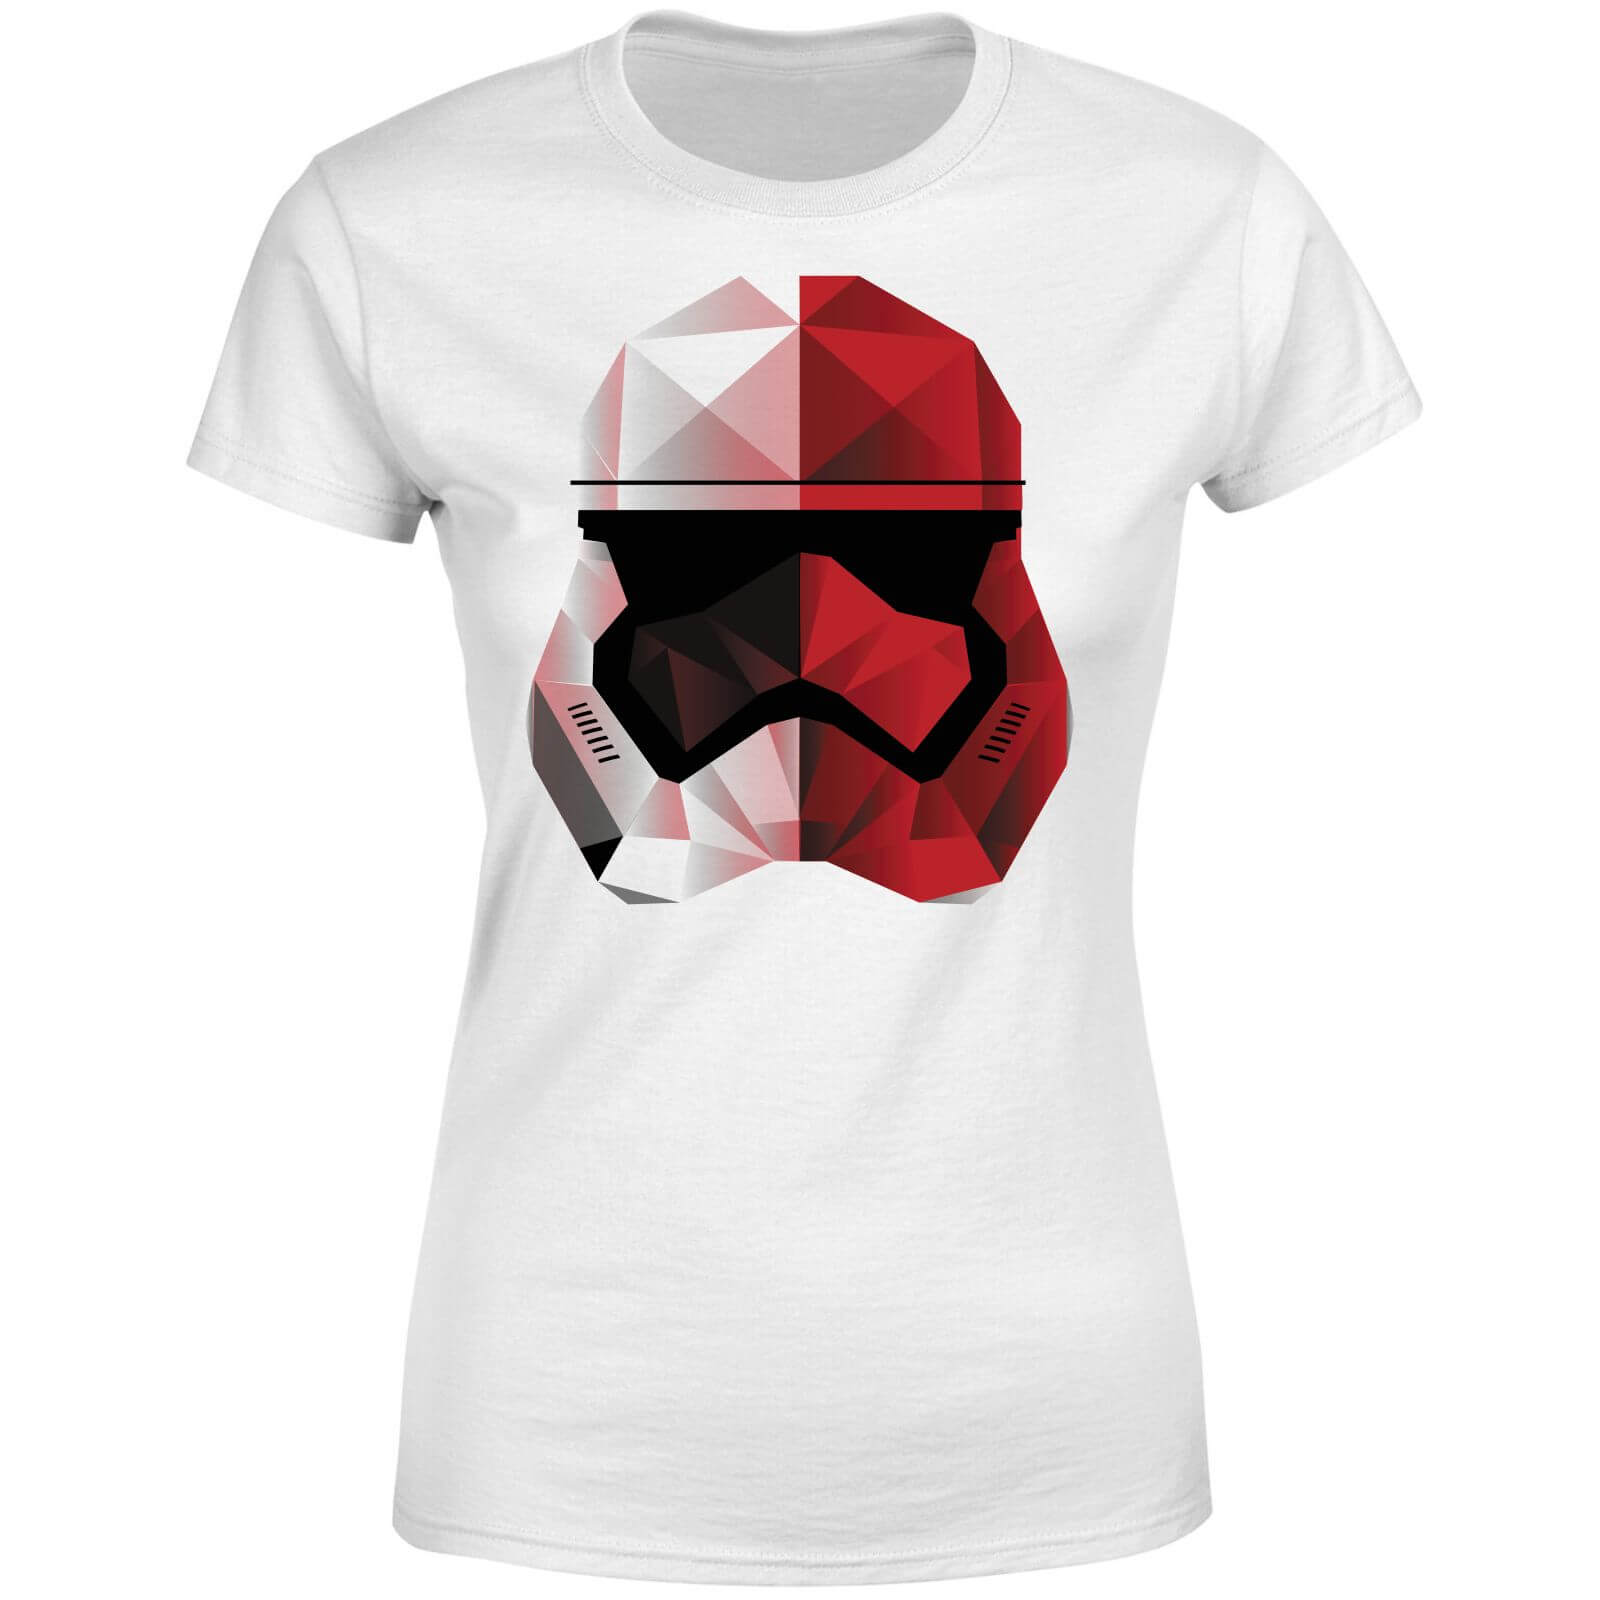 Star Wars Cubist Trooper Helmet White Women